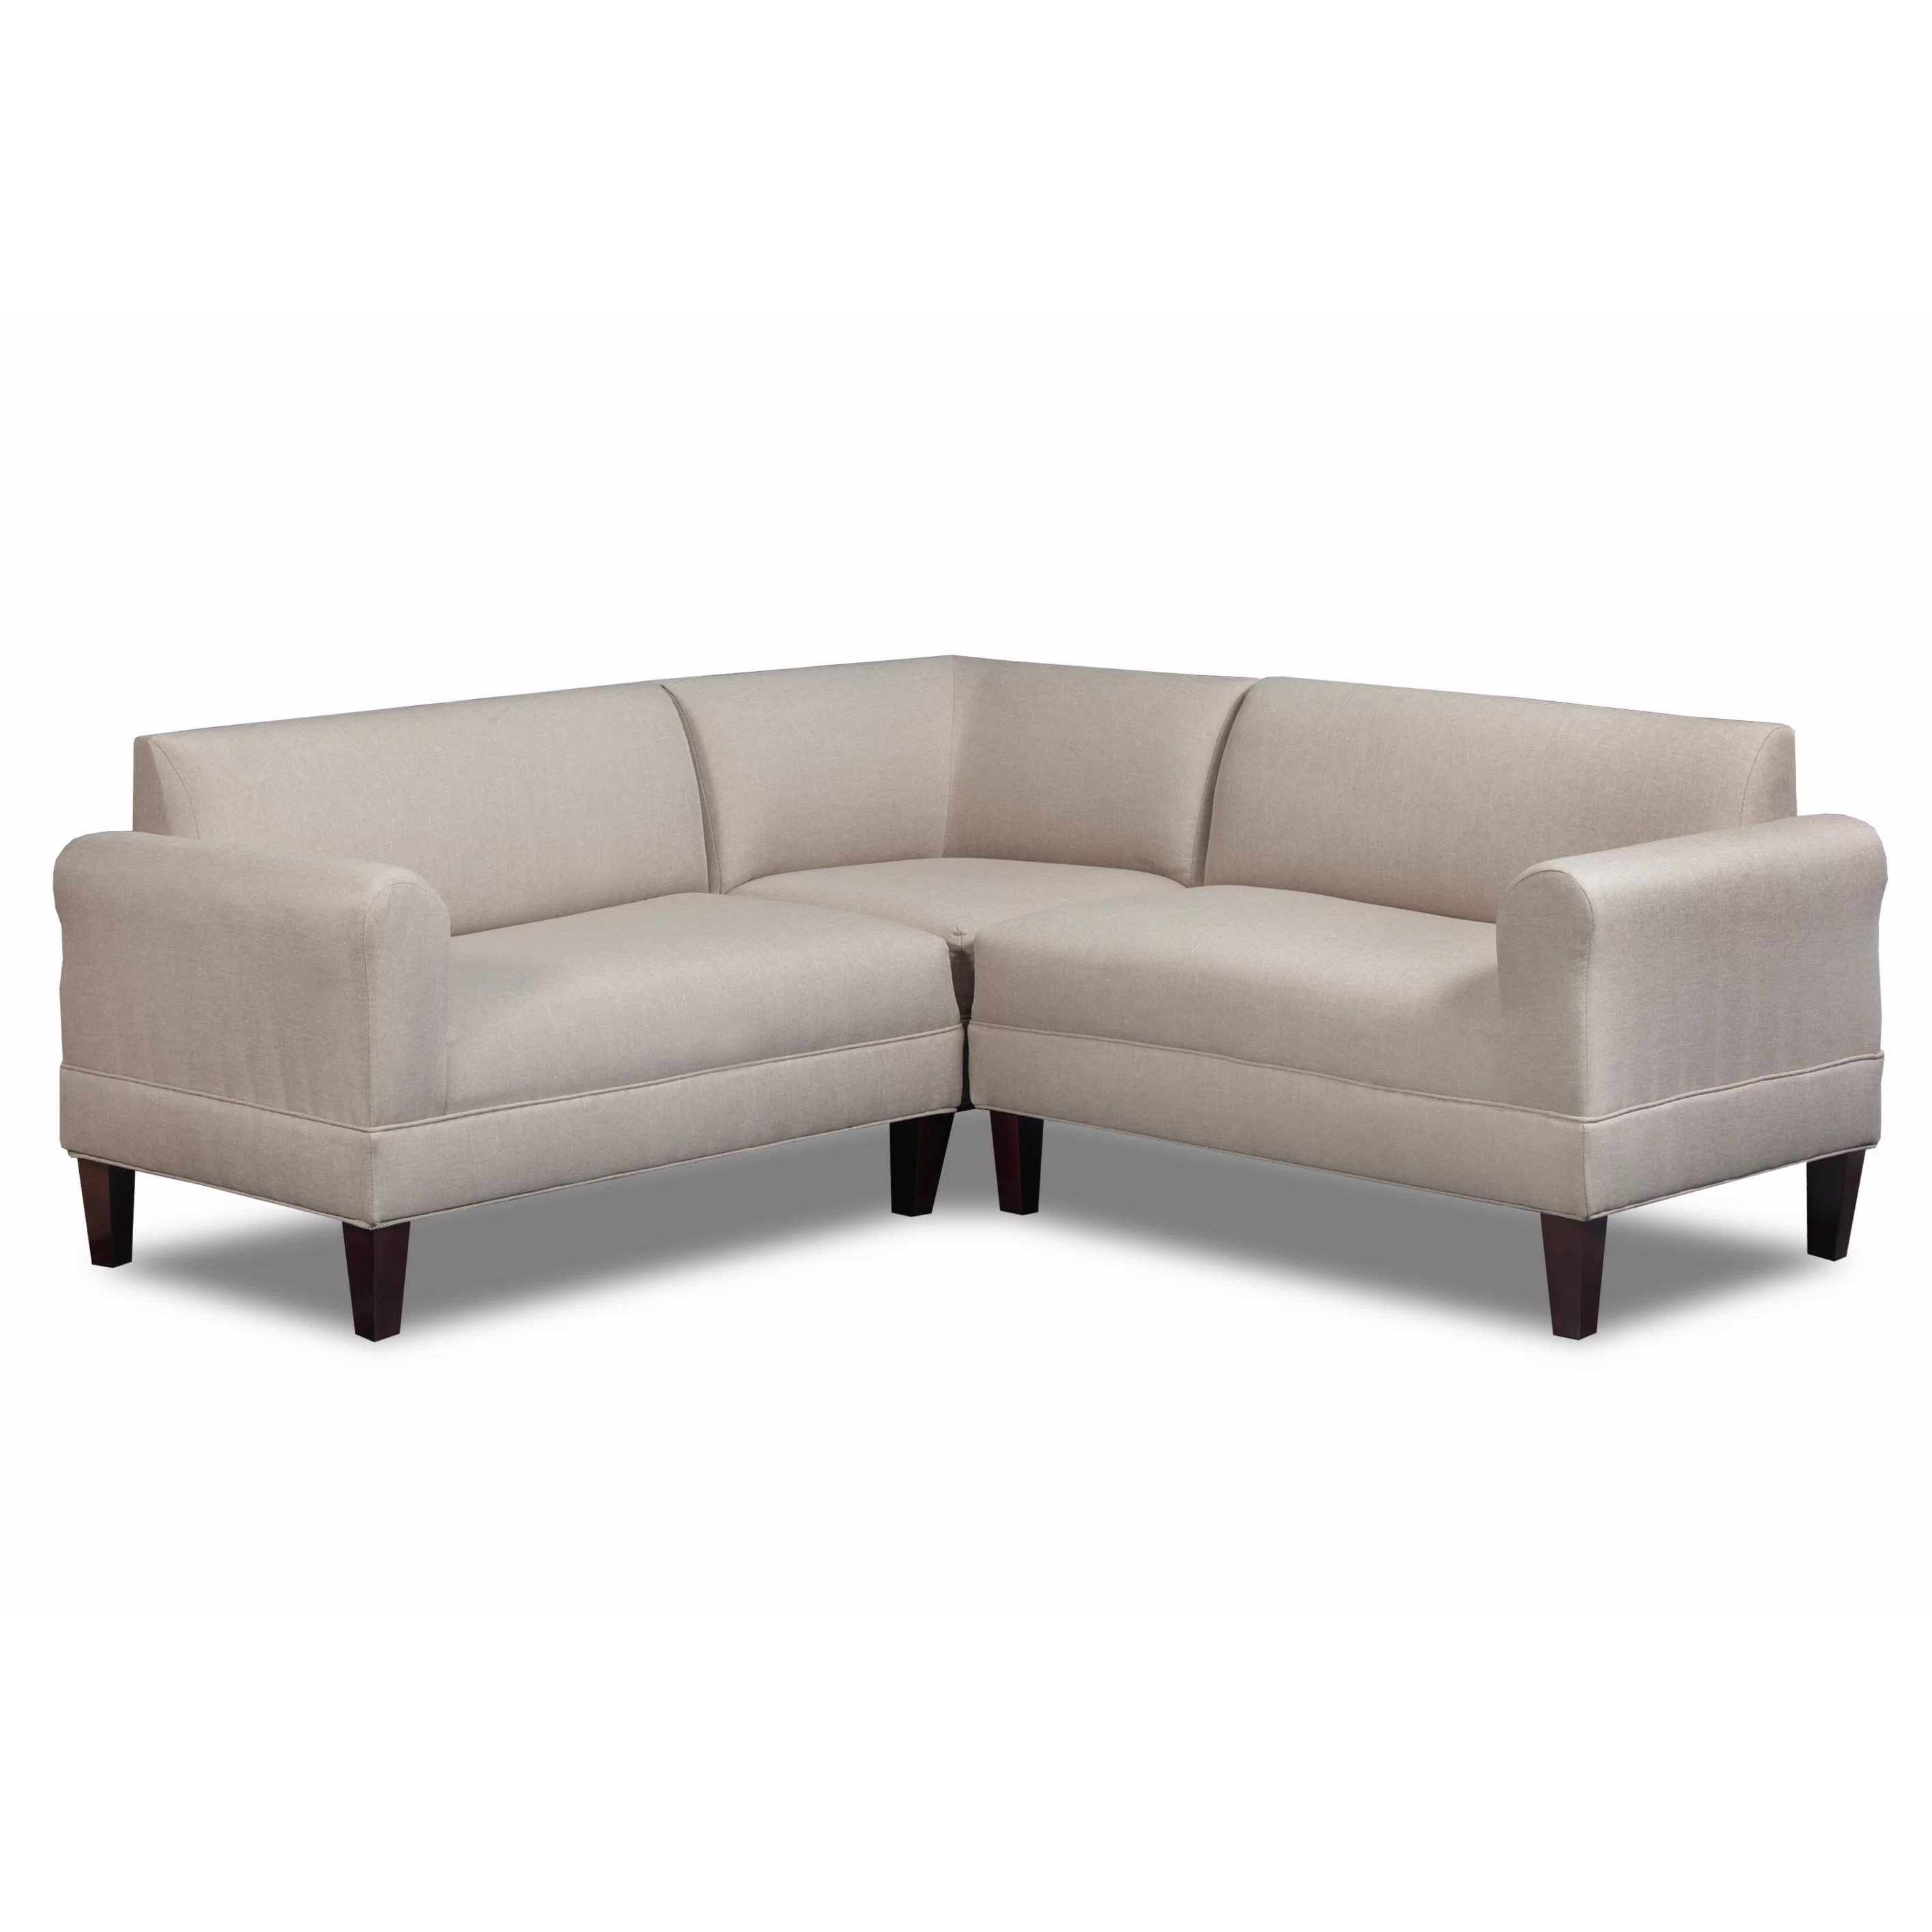 Carolina Accents Briley Sectional & Reviews   Wayfair on Riley 3 Piece Sectional Charleston id=12575